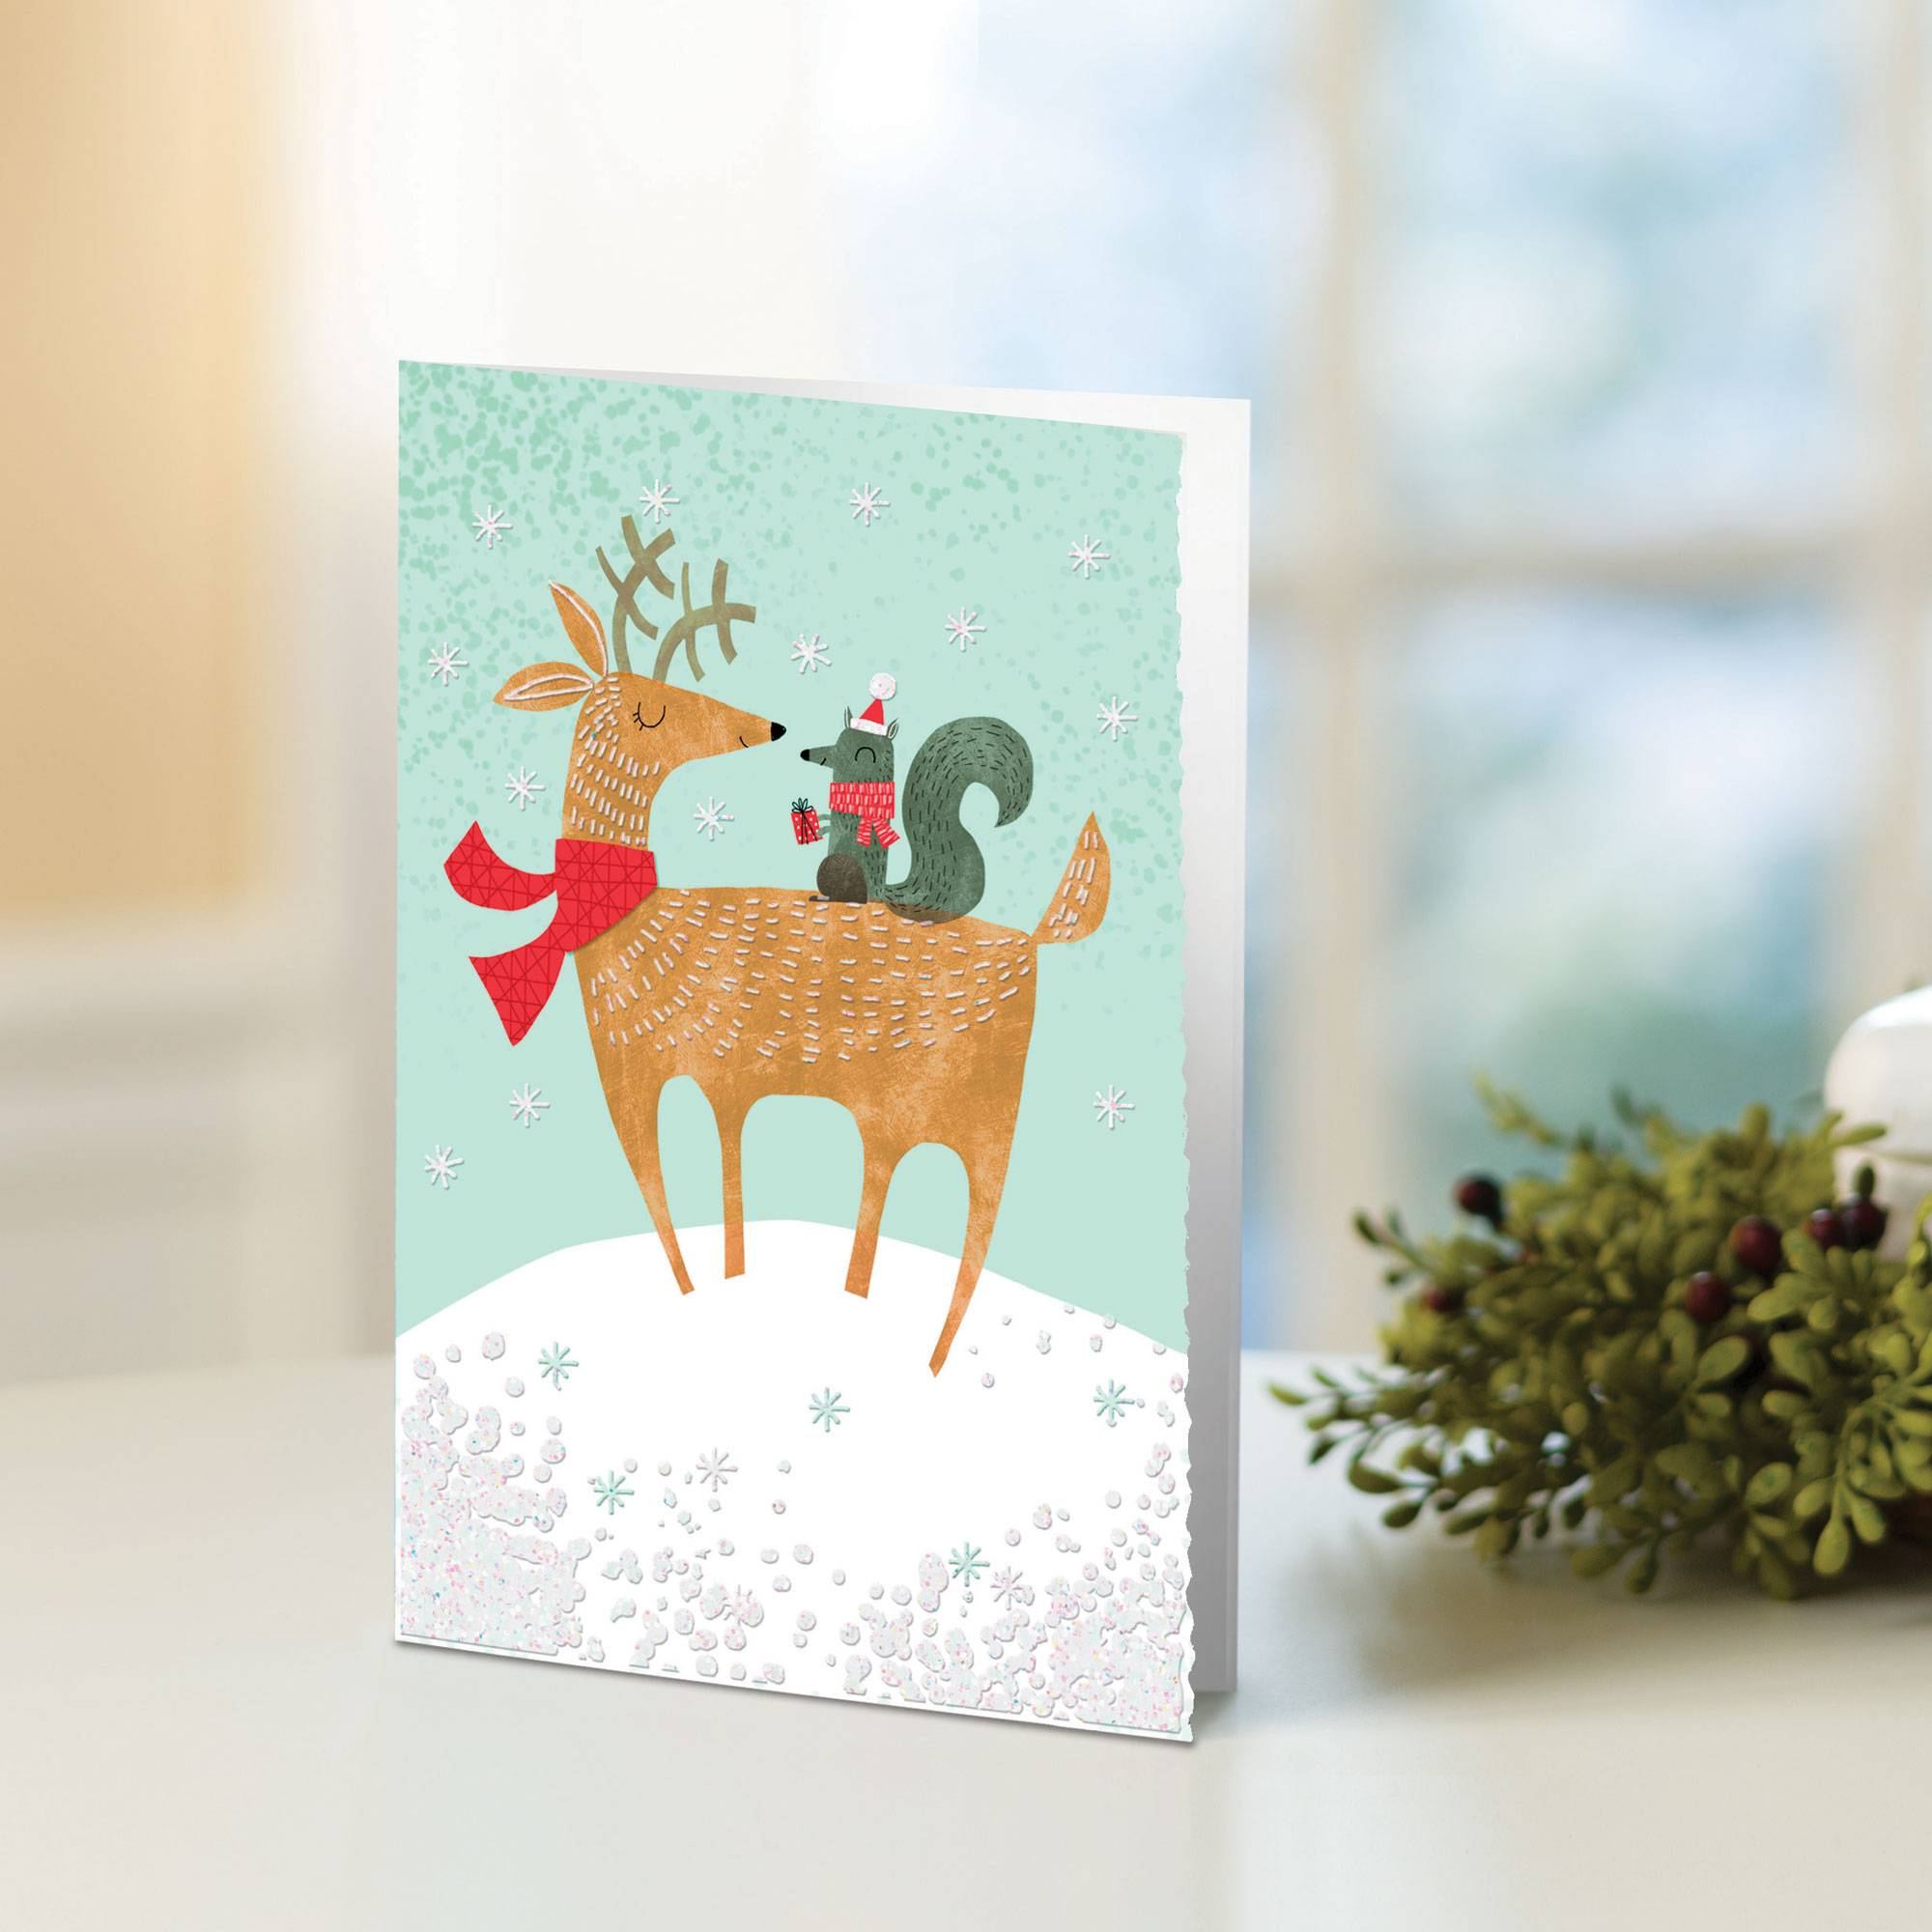 Unicef market unicef holiday cards boxed set reindeer and squirrel unicef market offers artisans a free platform to sell their work throughout the united states kristyandbryce Gallery